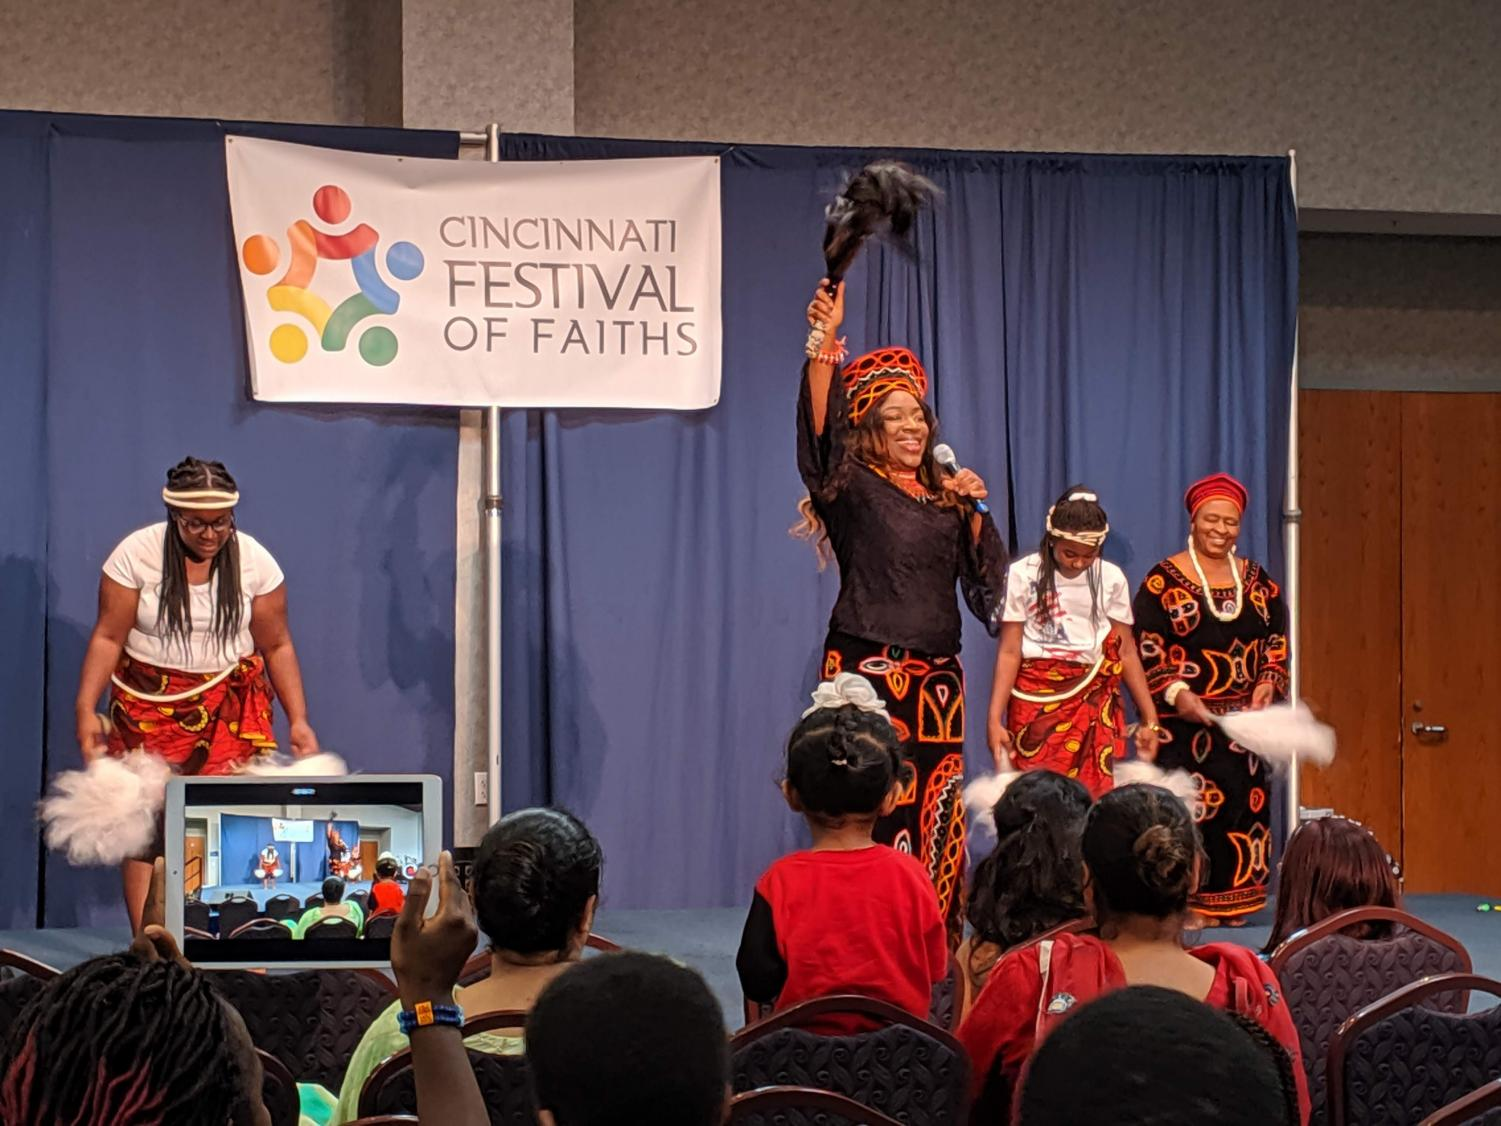 A quartet of dancers perform Cameroonian song and dance in traditional costume. A variety of performances occurred throughout the festival, demonstrating an impressive array of faiths and cultures.